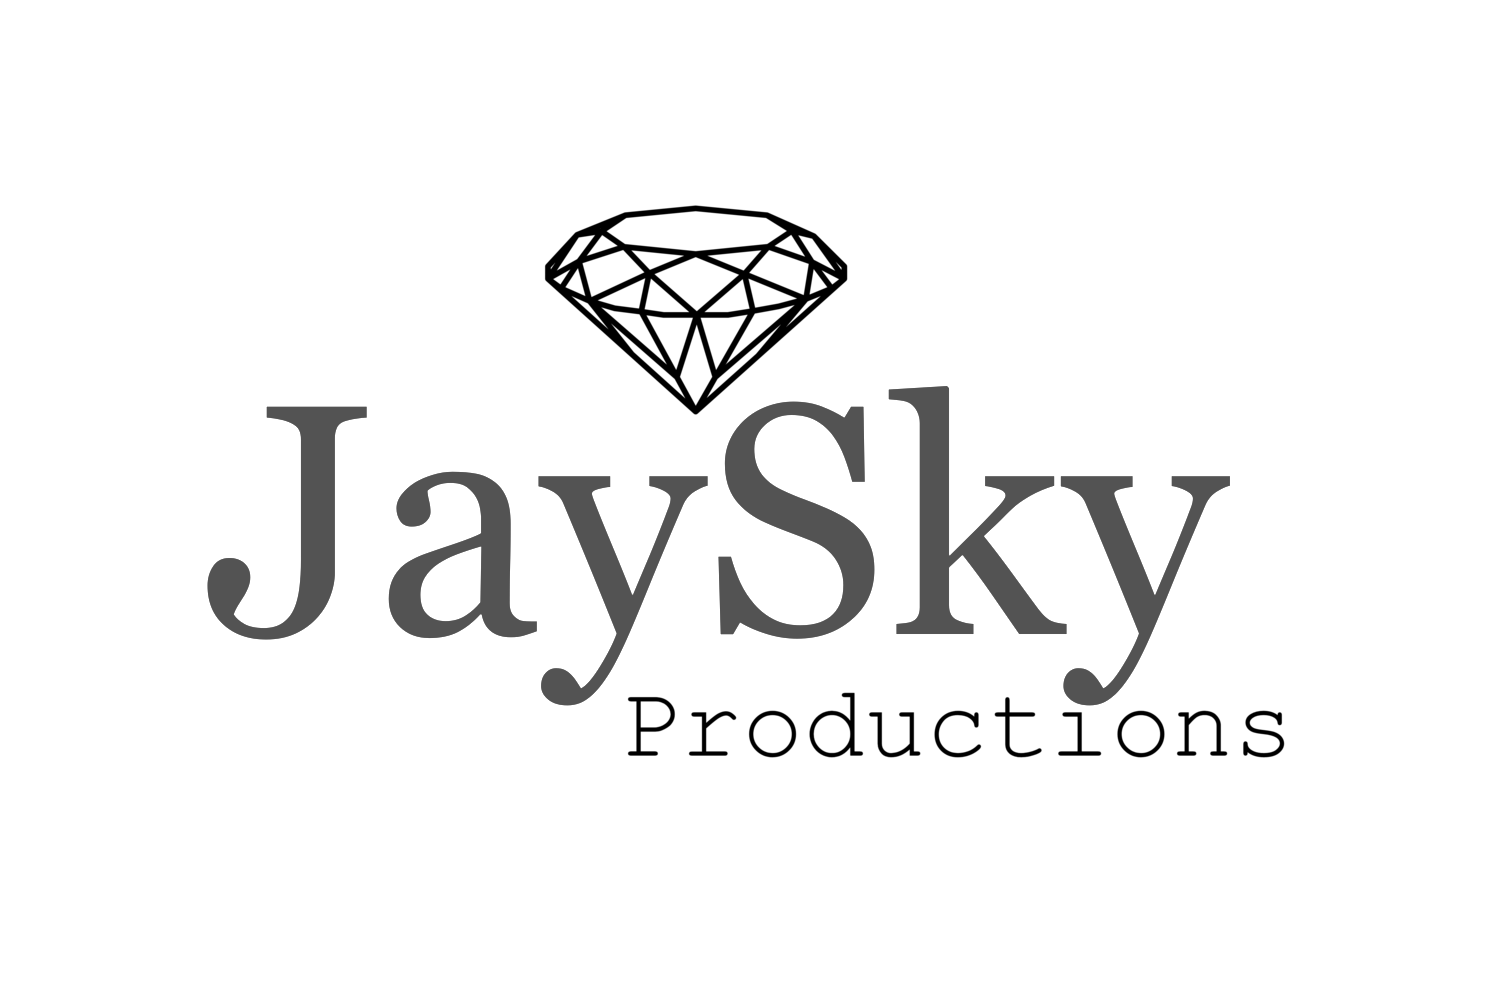 JaySky Productions